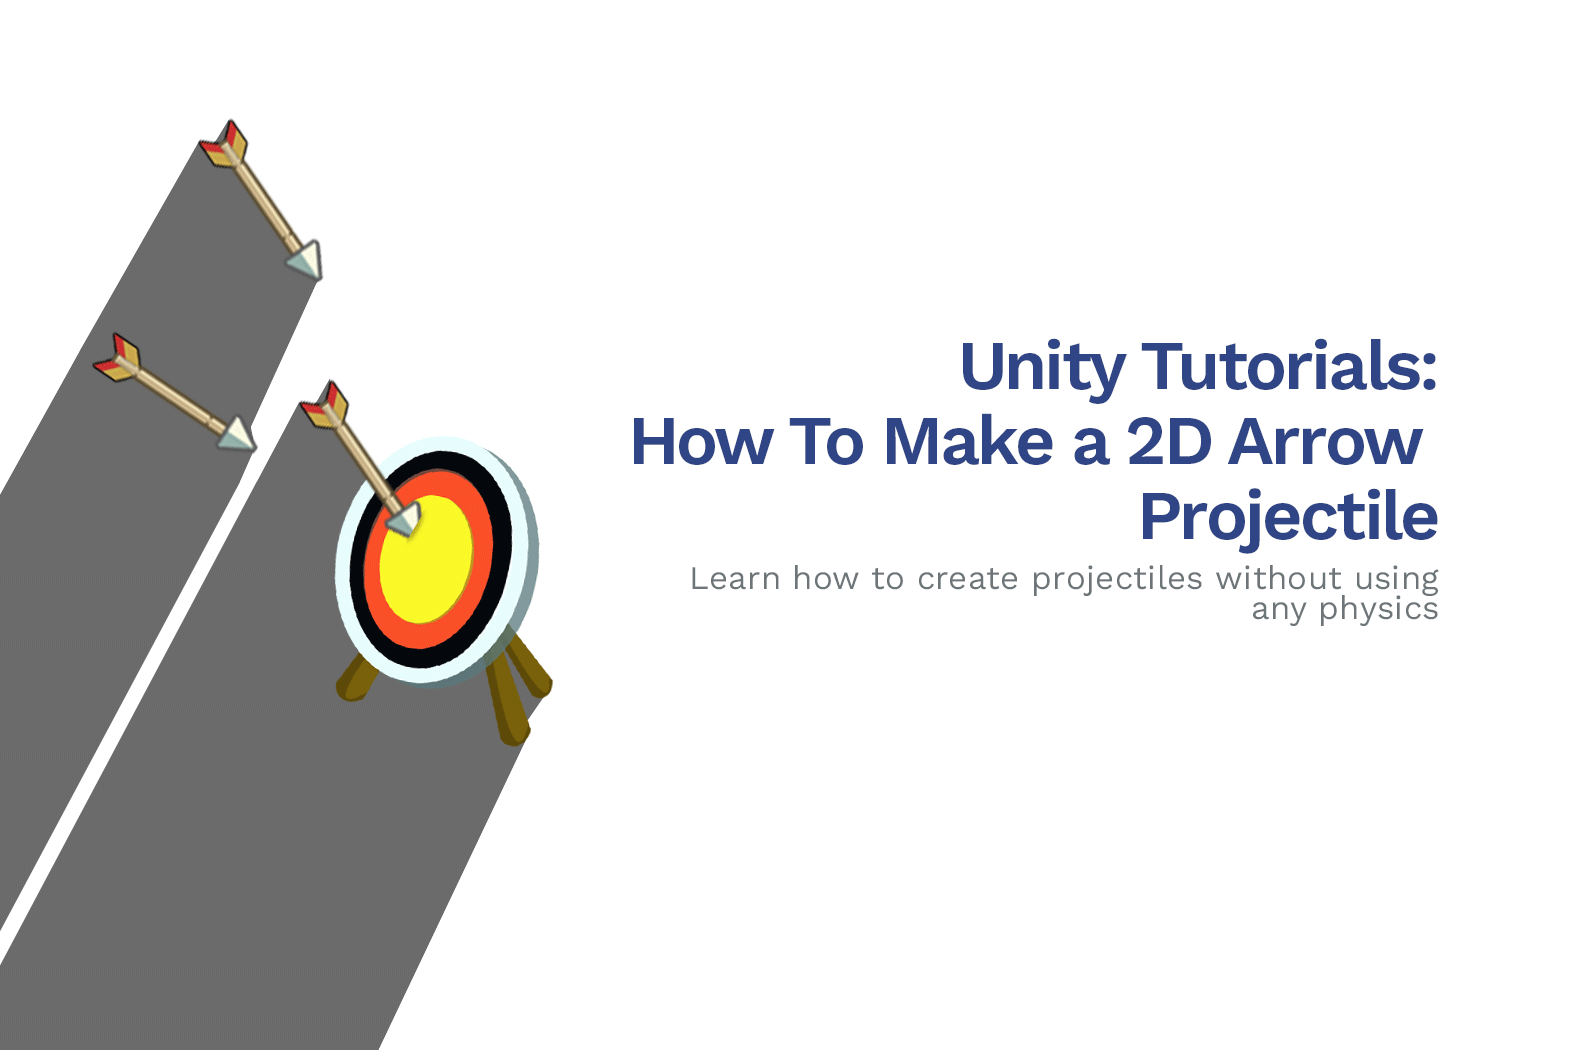 Unity Tutorials: How To Make a 2D Arrow Projectile